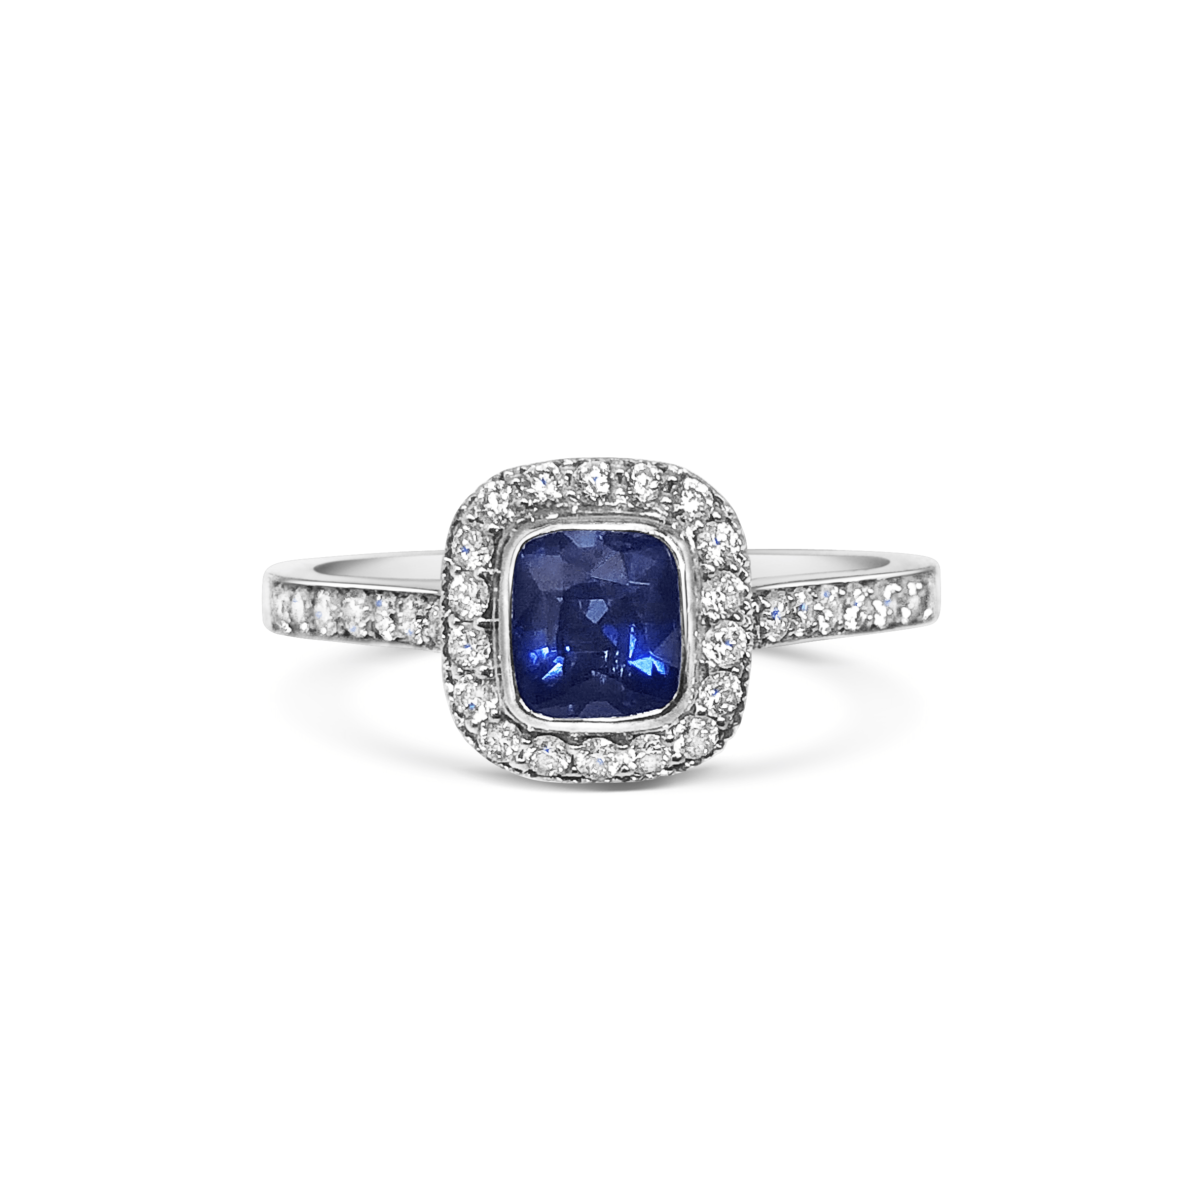 Zoe Cushion Blue Sapphire Rubover Halo Diamond Engagement Ring Front View